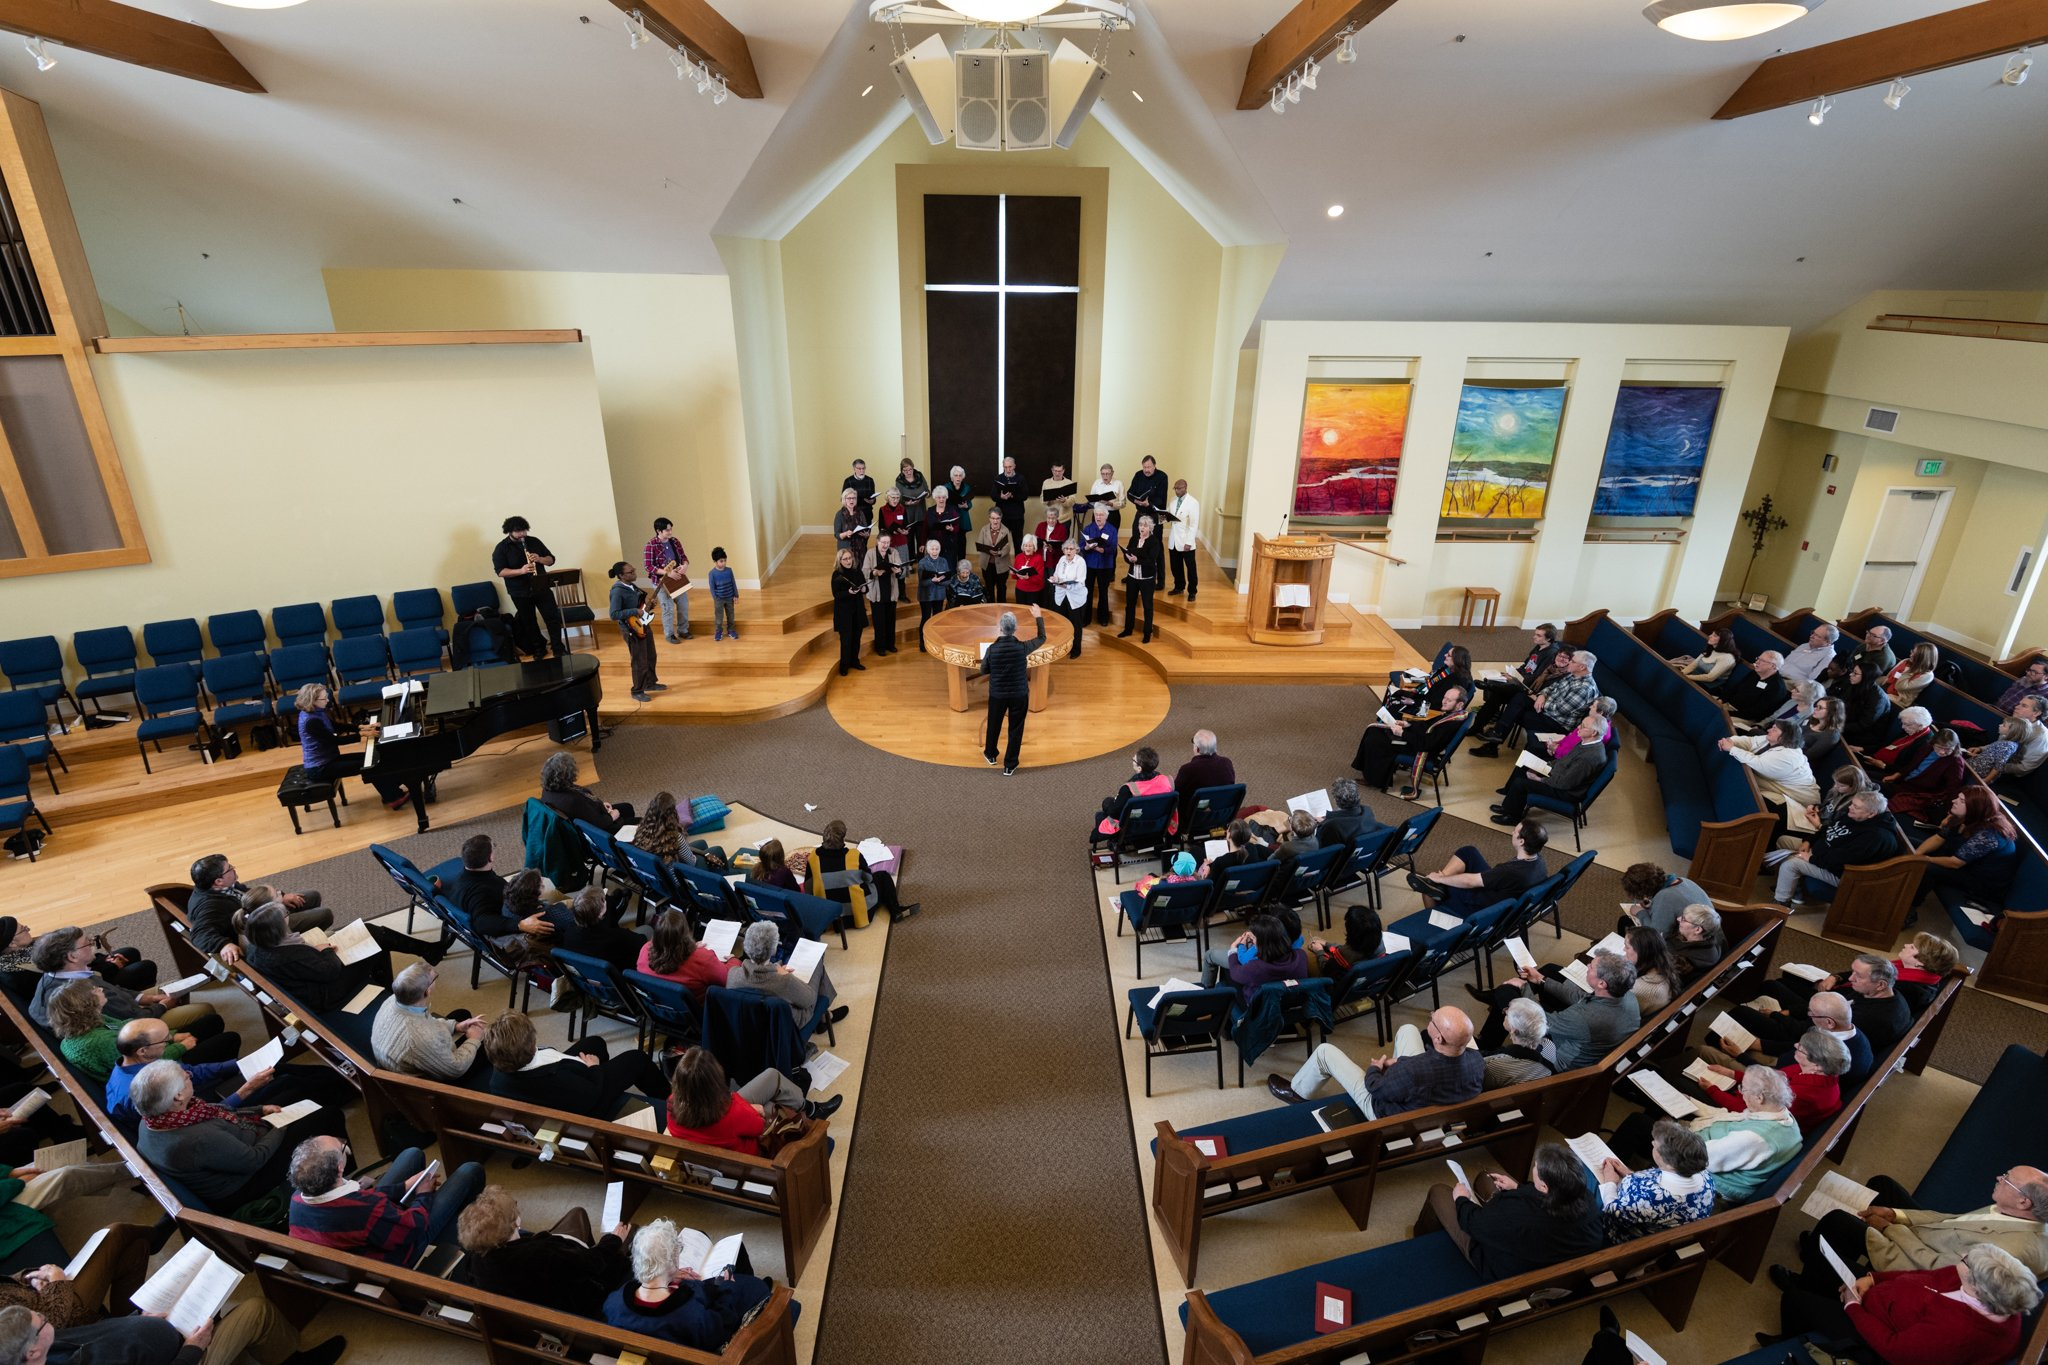 Houses Of Worship Are Not Just For Worship Anymore